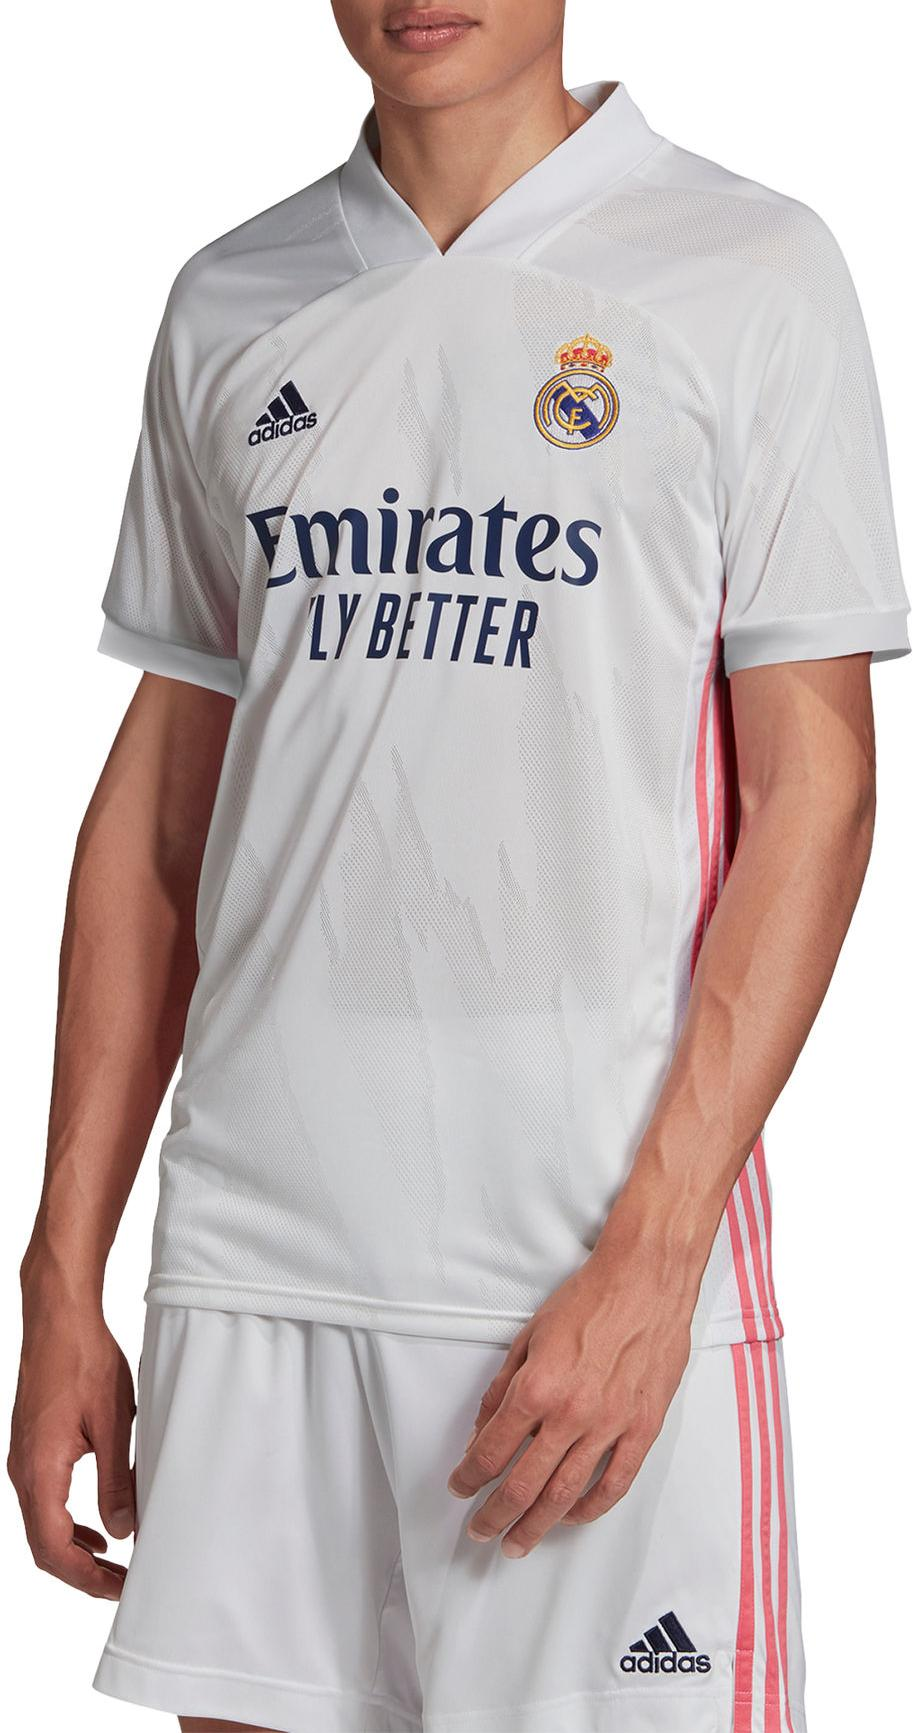 Dres adidas REAL MADRID HOME JERSEY 2020/21